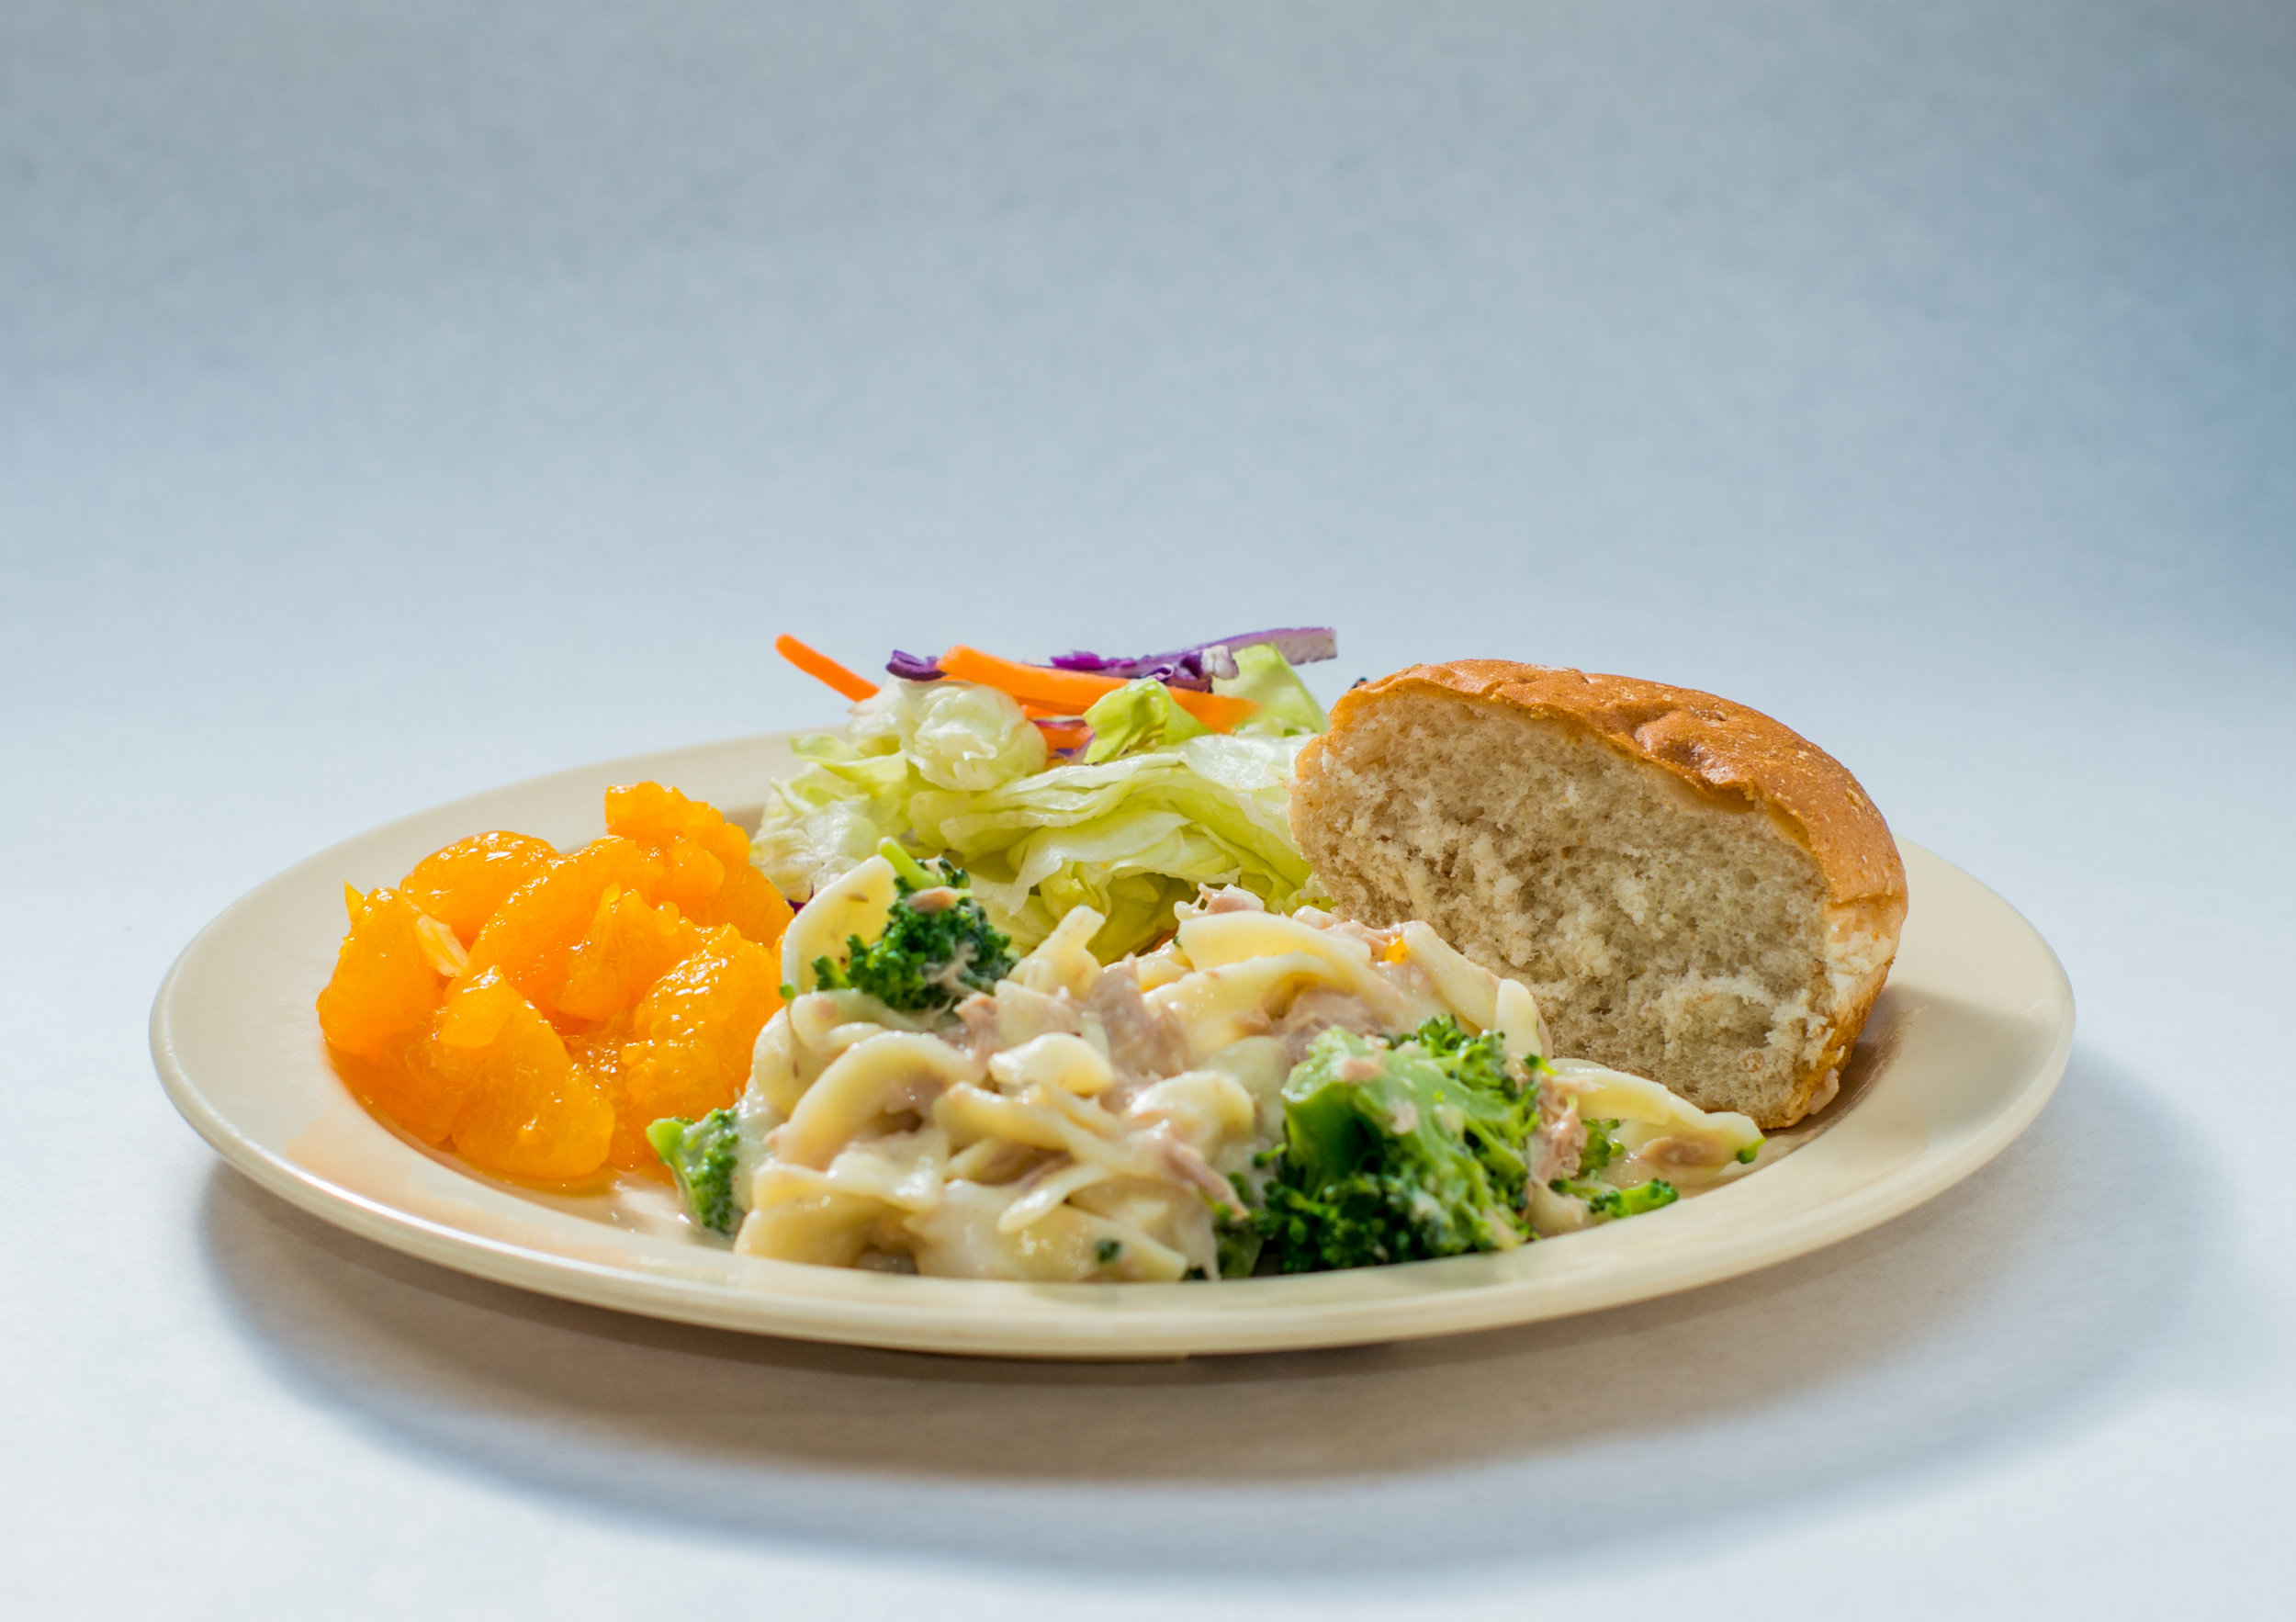 20140306-UCCC Lunch Plate-PMG_4757.jpg